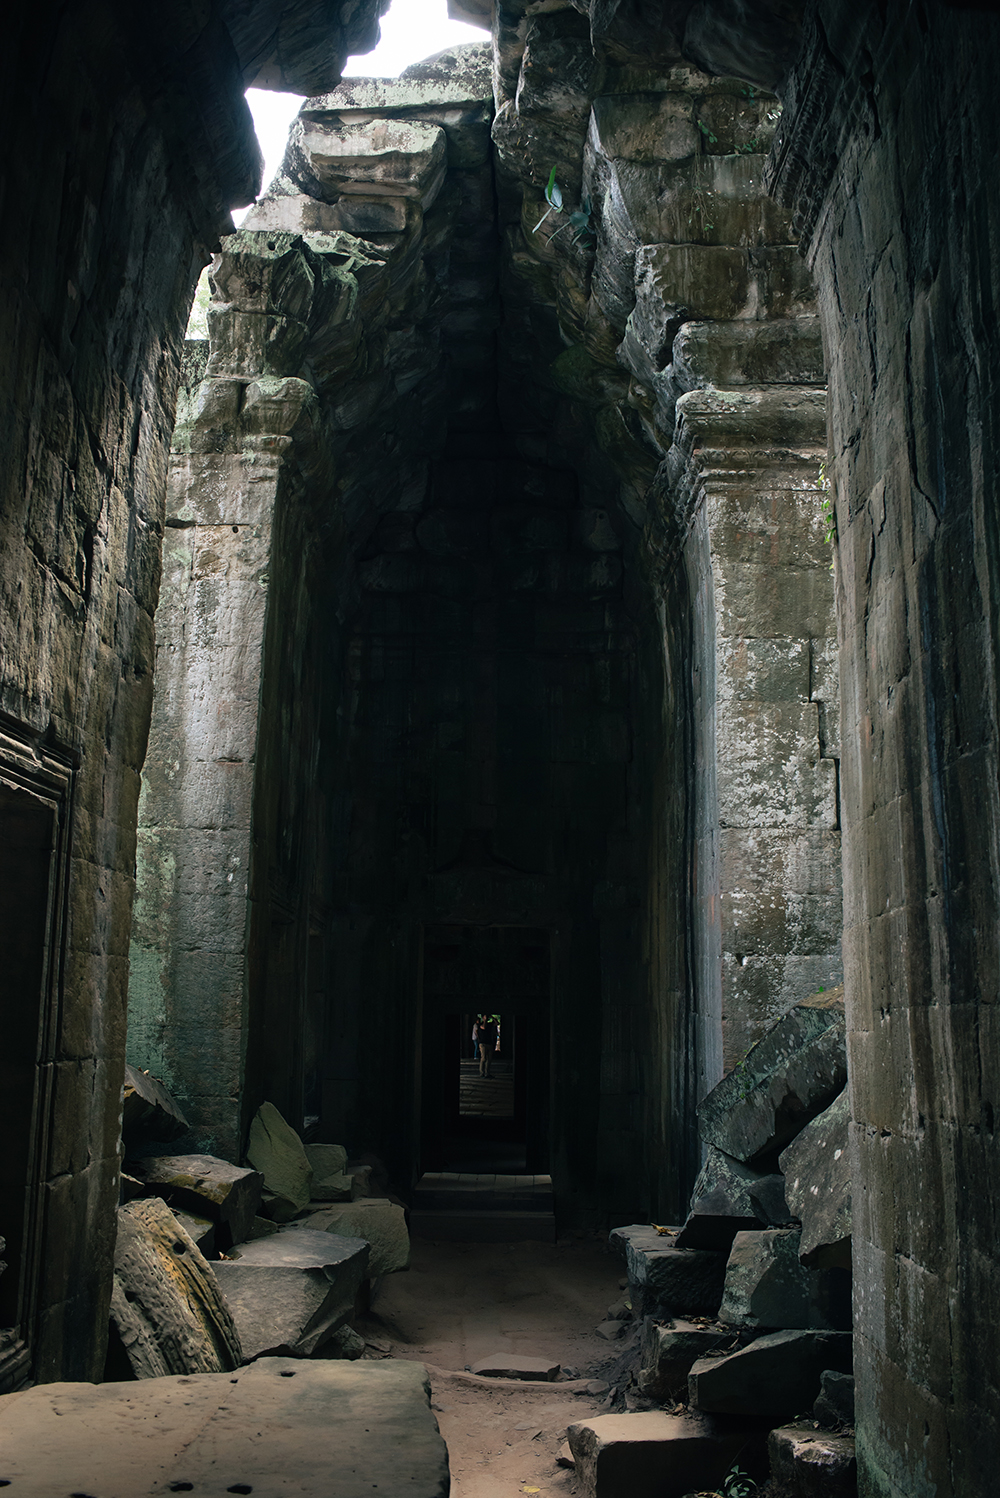 Ta Prohm temple arch hallway Siem Reap Angkor Cambodia. Crumbling ruins reclaimed by nature and overgrown with trees and plants.